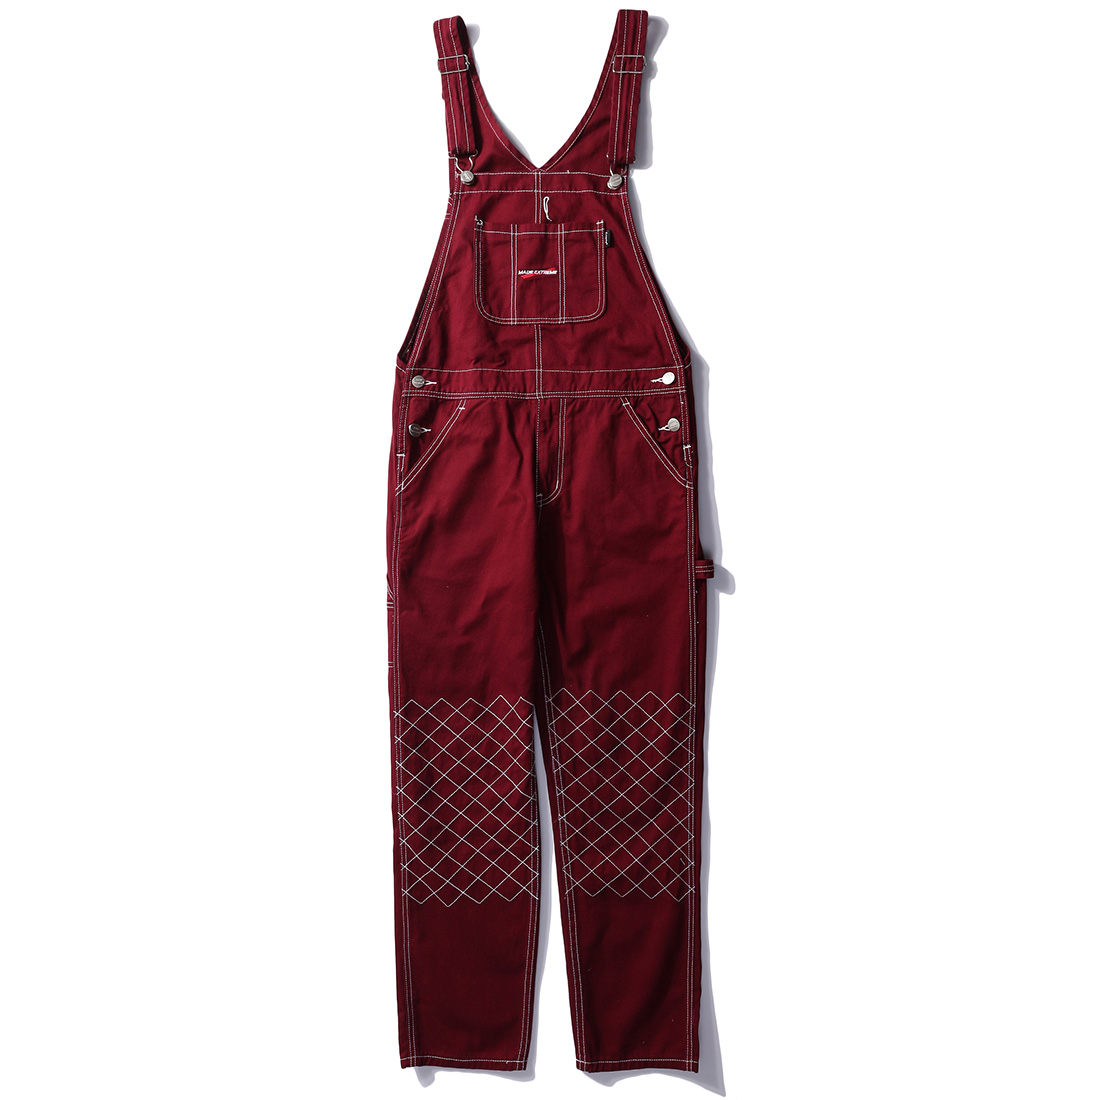 EFUNGAL 2019 Spring Summer Harem Overalls Joggers Men Women Hip Hop Streetwear High Fashion Casual Trousers Vintage Bib Pants-in Overalls from Men's Clothing    3